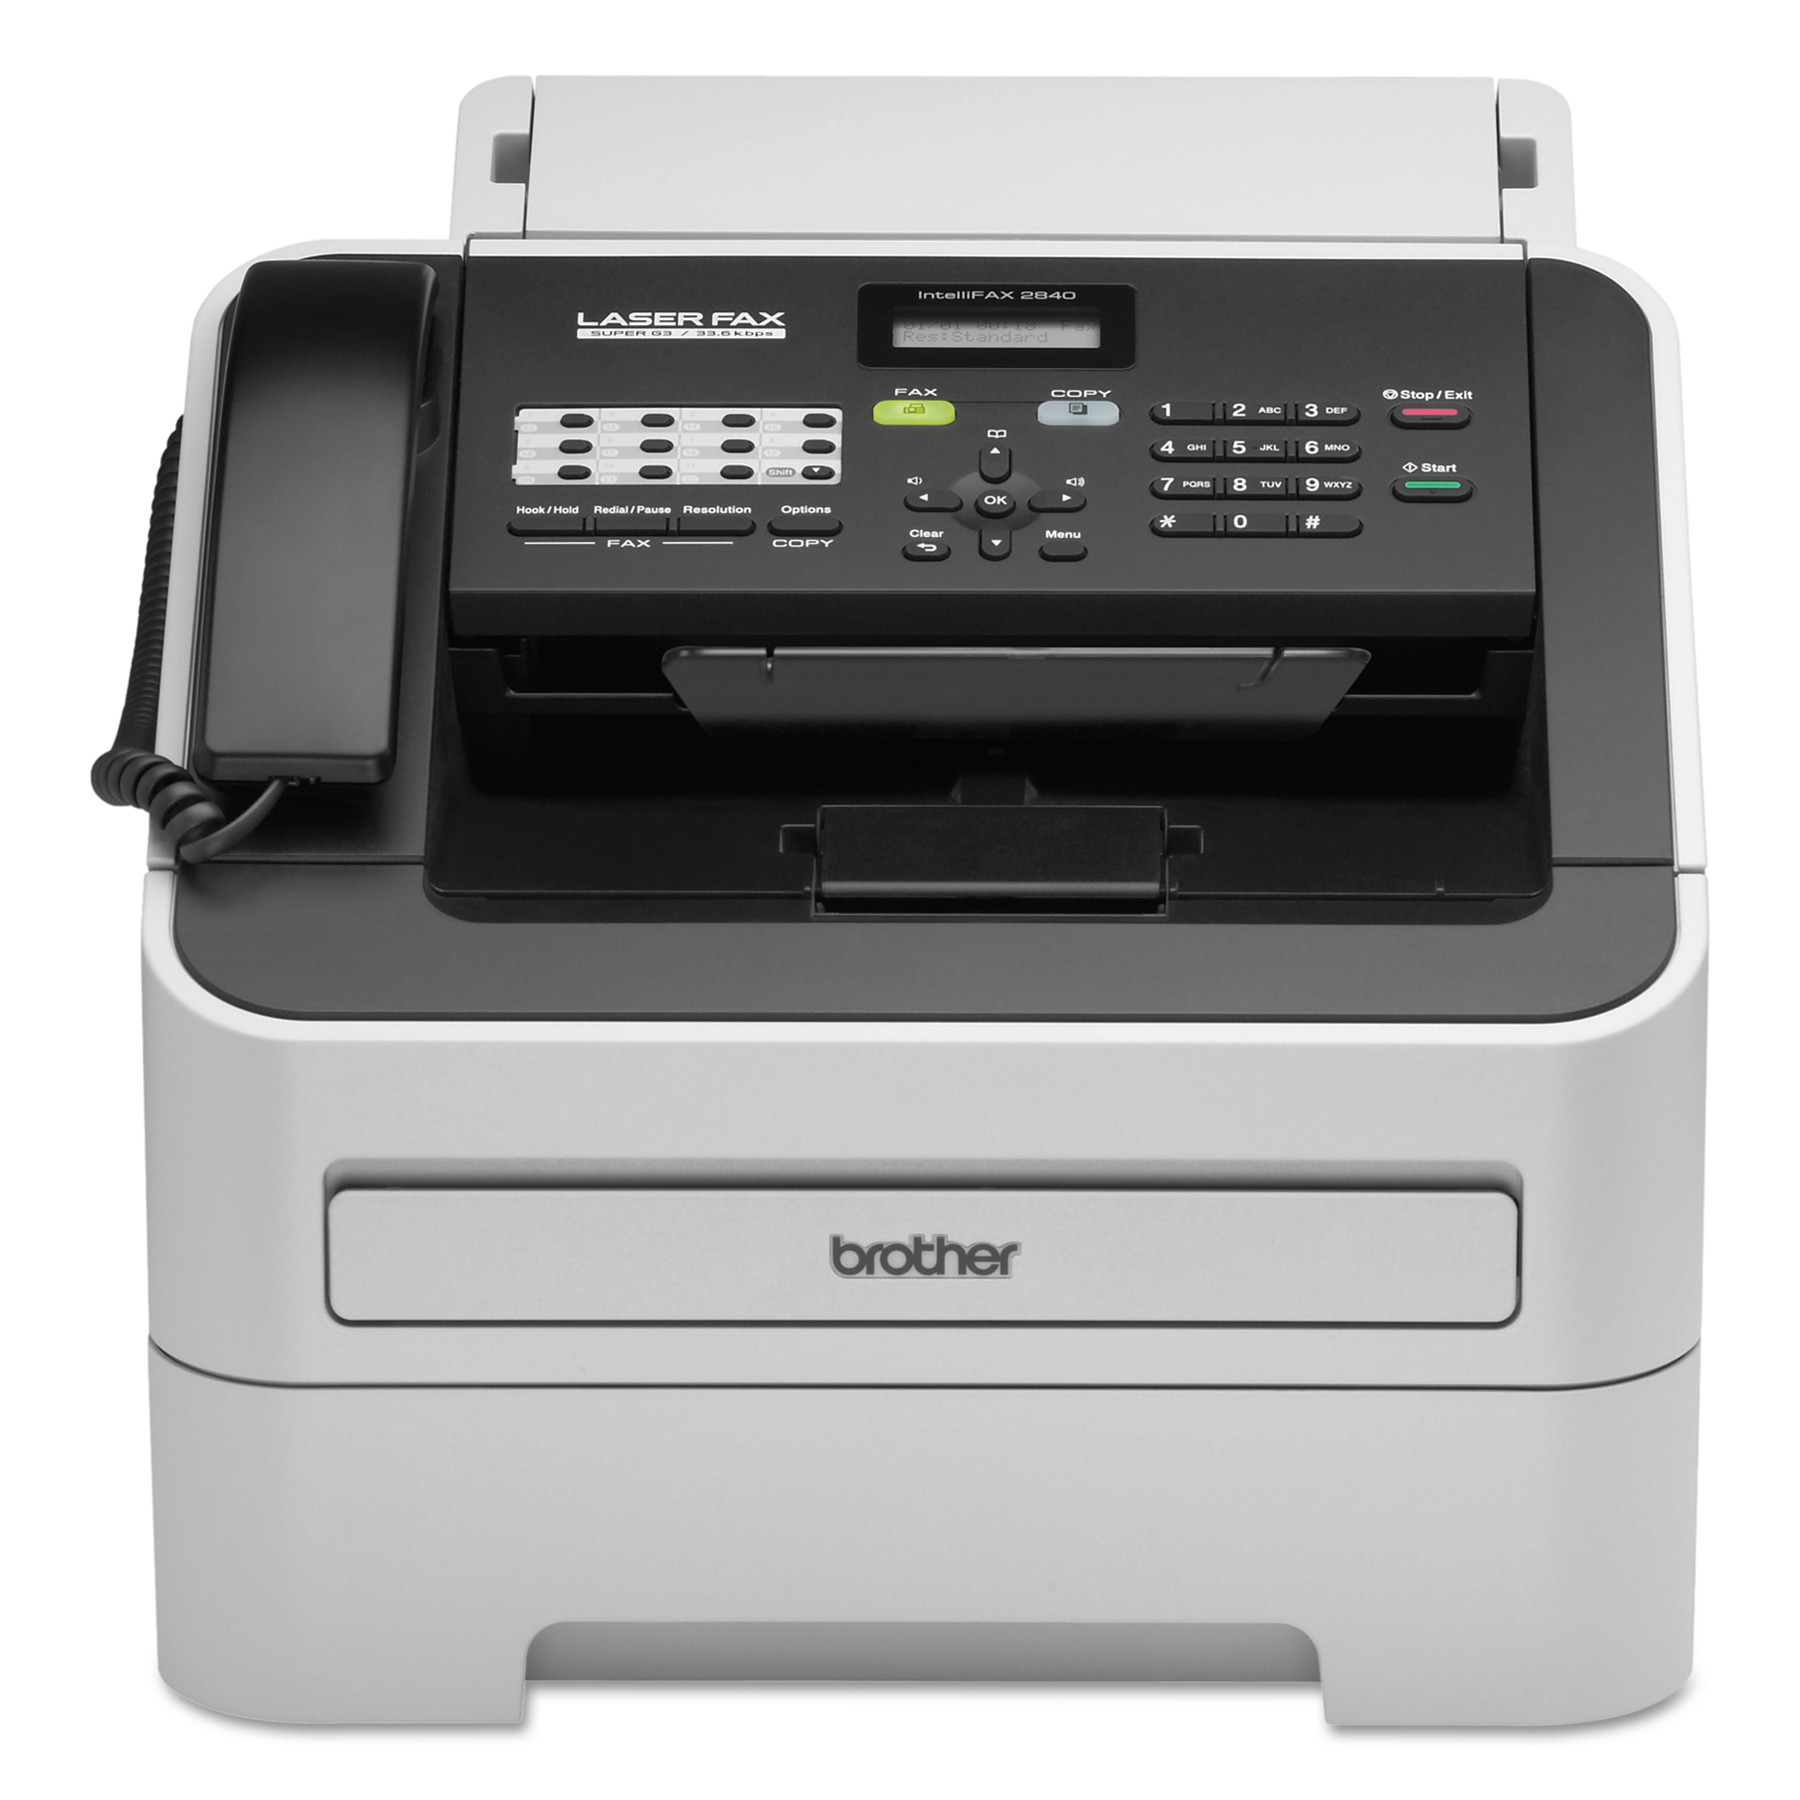 Brother intelliFAX-2840 Laser Fax Machine, Copy/Fax/Print